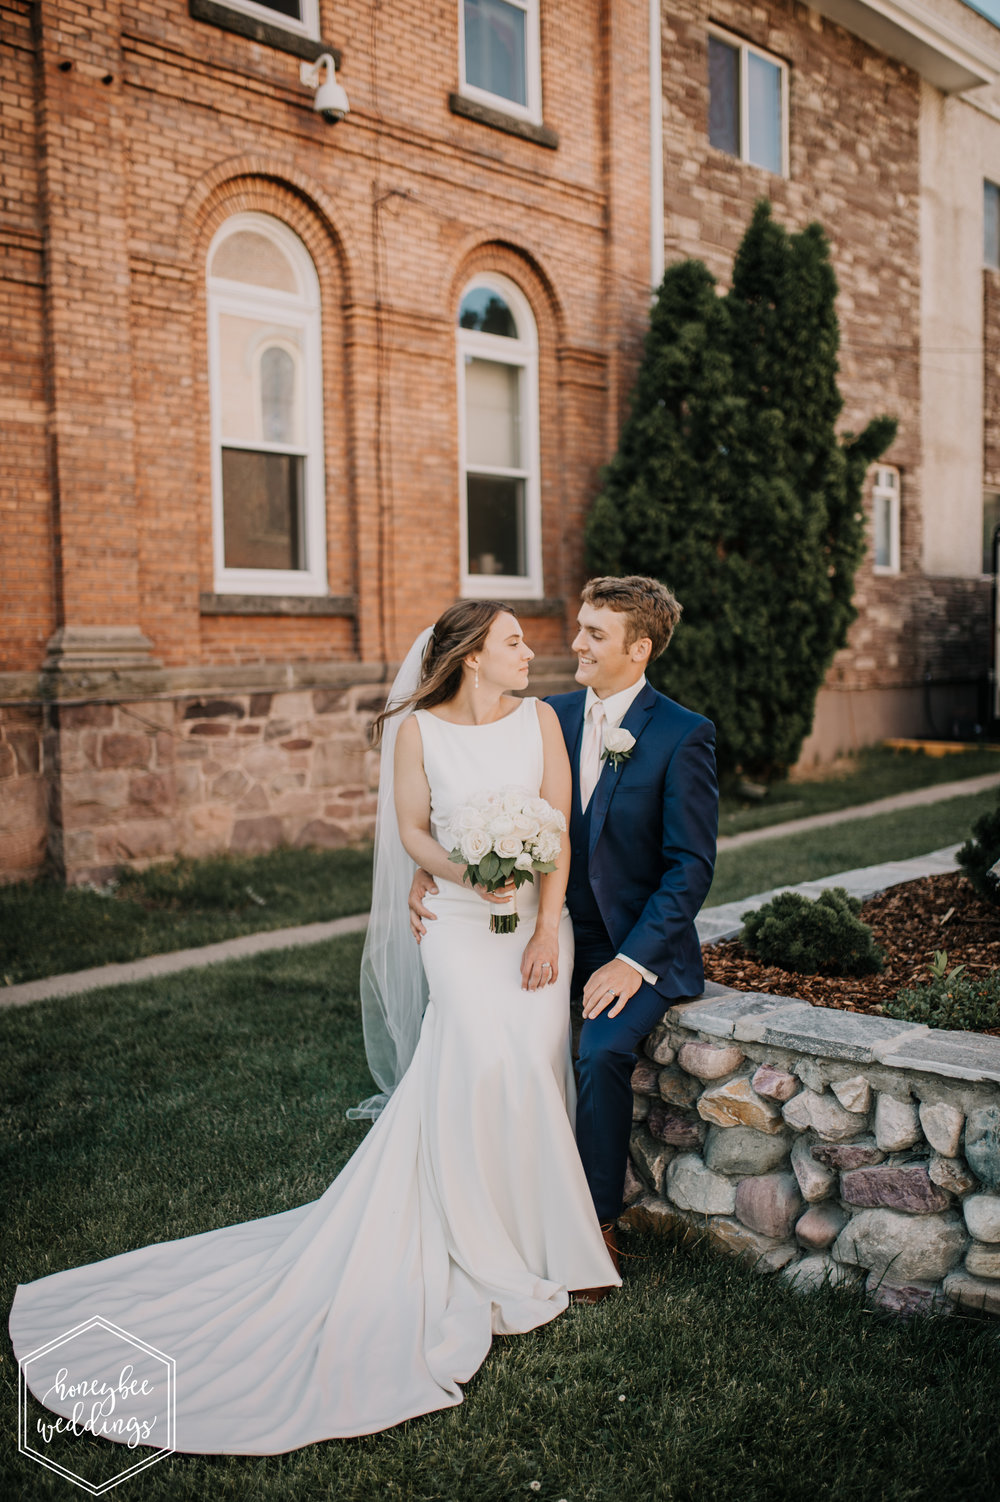 197 Montana Wedding Photographer_St. Francis Wedding_Tifani Zanto + Ryan Burke -6836.jpg